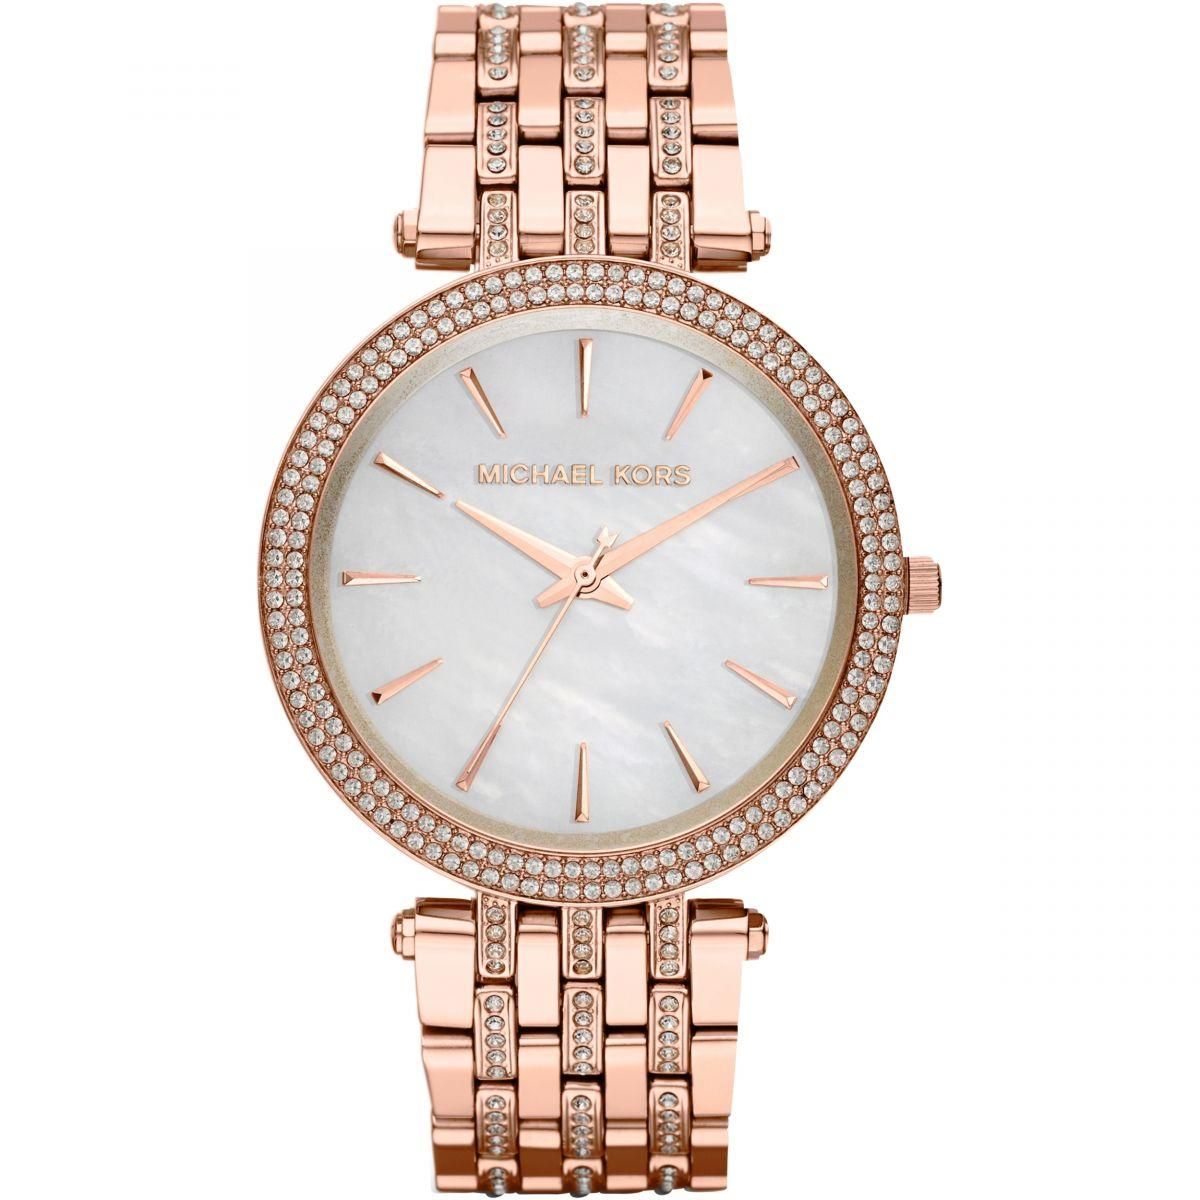 Michael Kors Darci Glitz Rose Gold-Tone Stainless Steel Bracelet 39mm Ladies Watch Mk3220 By Watch Centre.